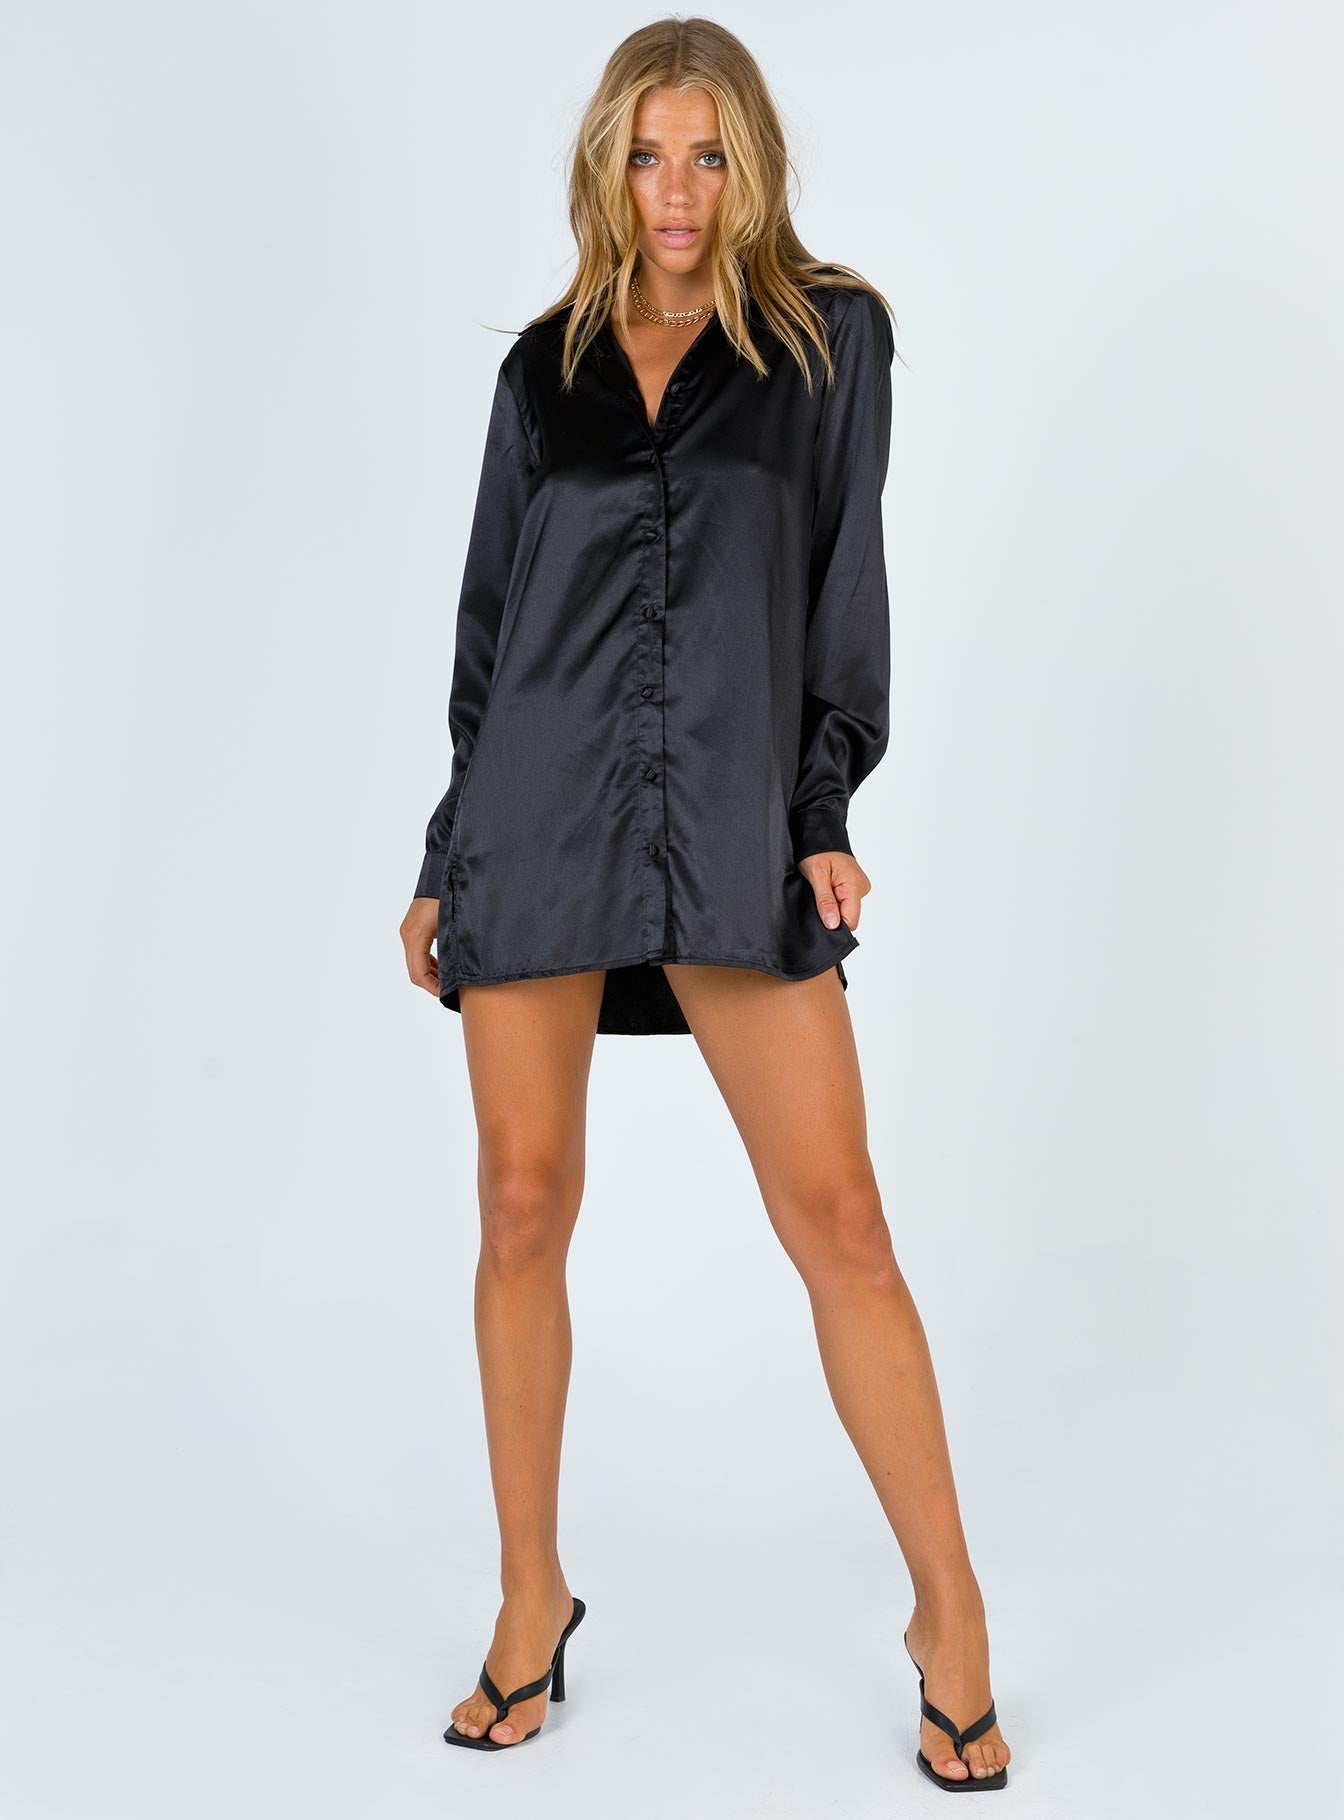 90210 Satin Shirt Mini Dress Black